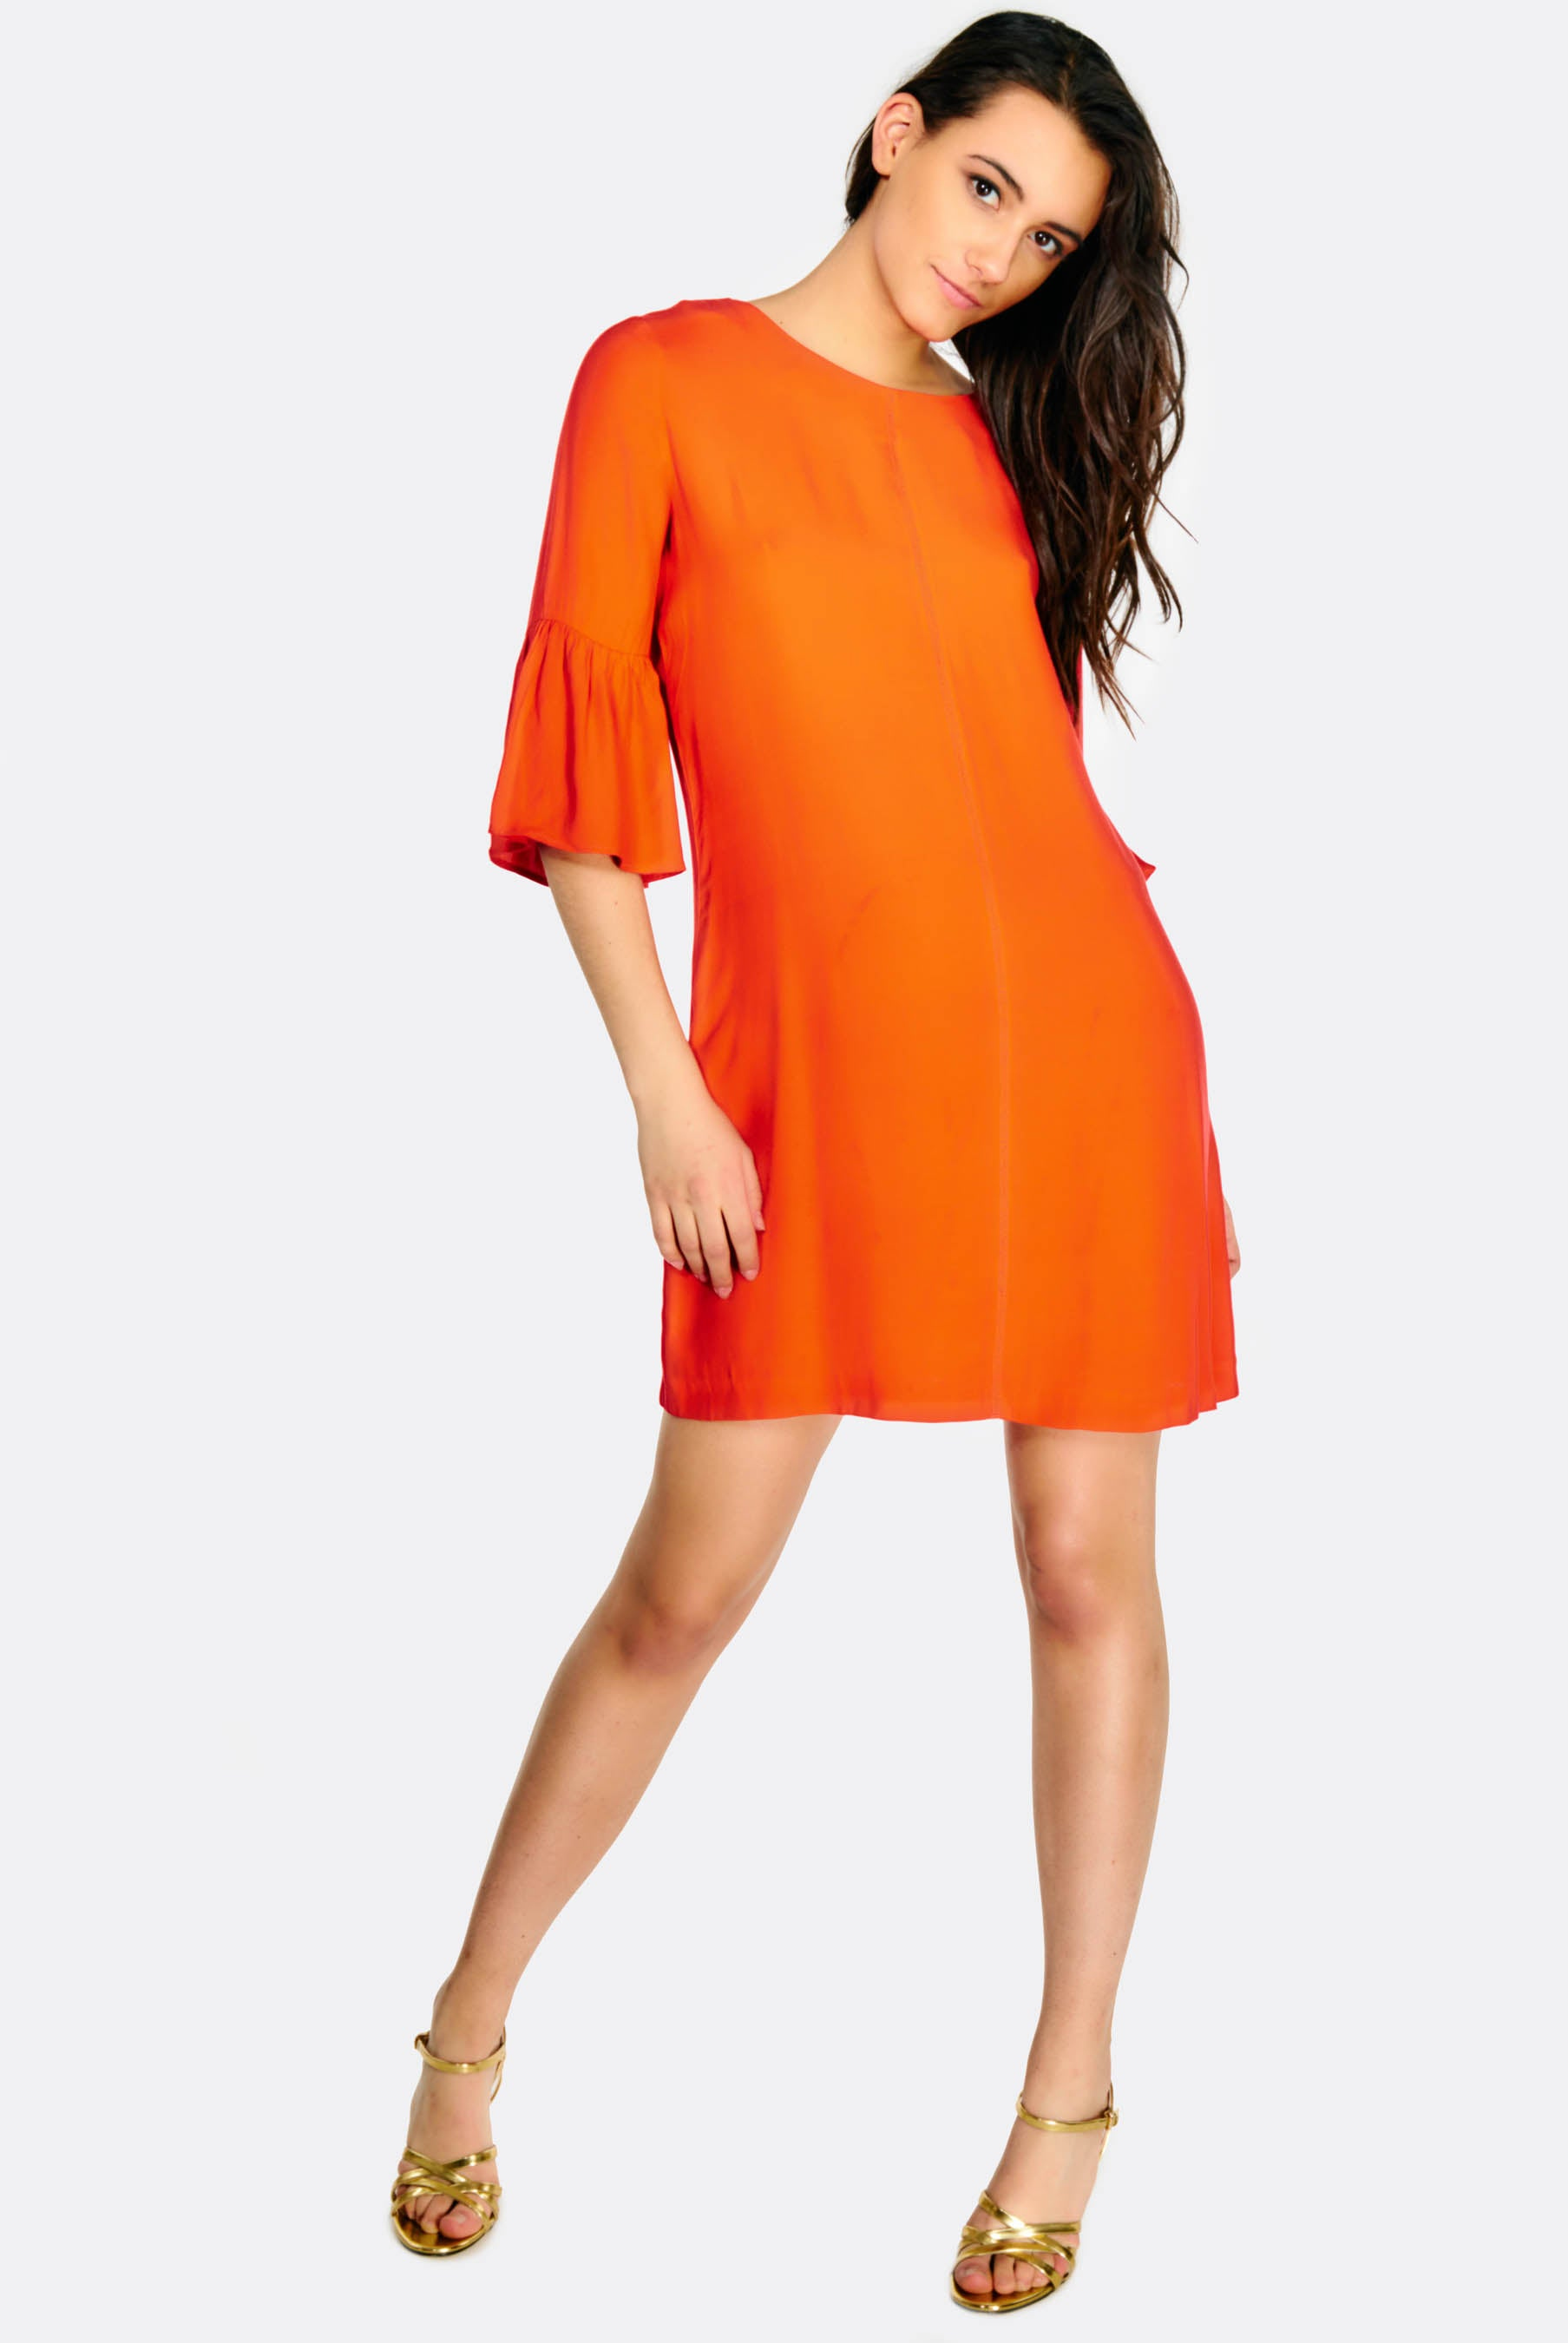 Orange Half Sleeve Shift Dress Blackbetty